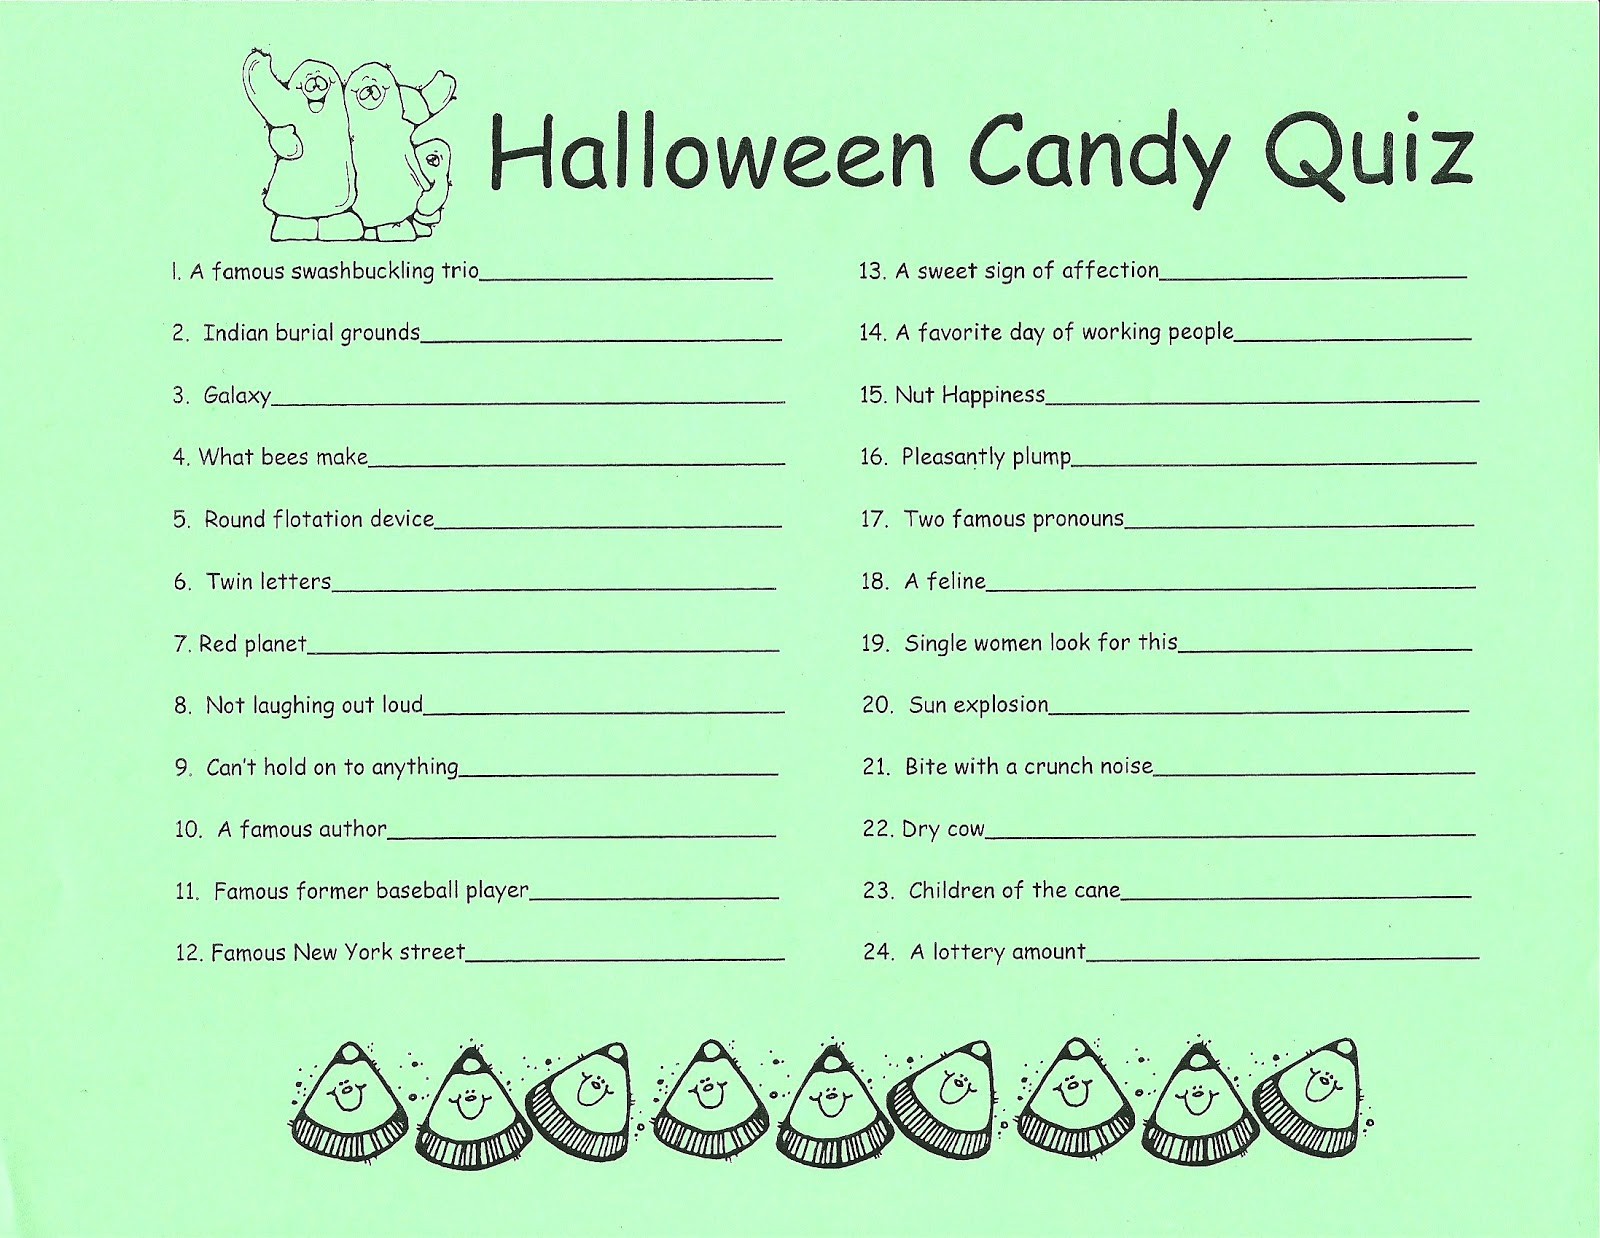 halloween candy quiz printable - AOL Image Search results